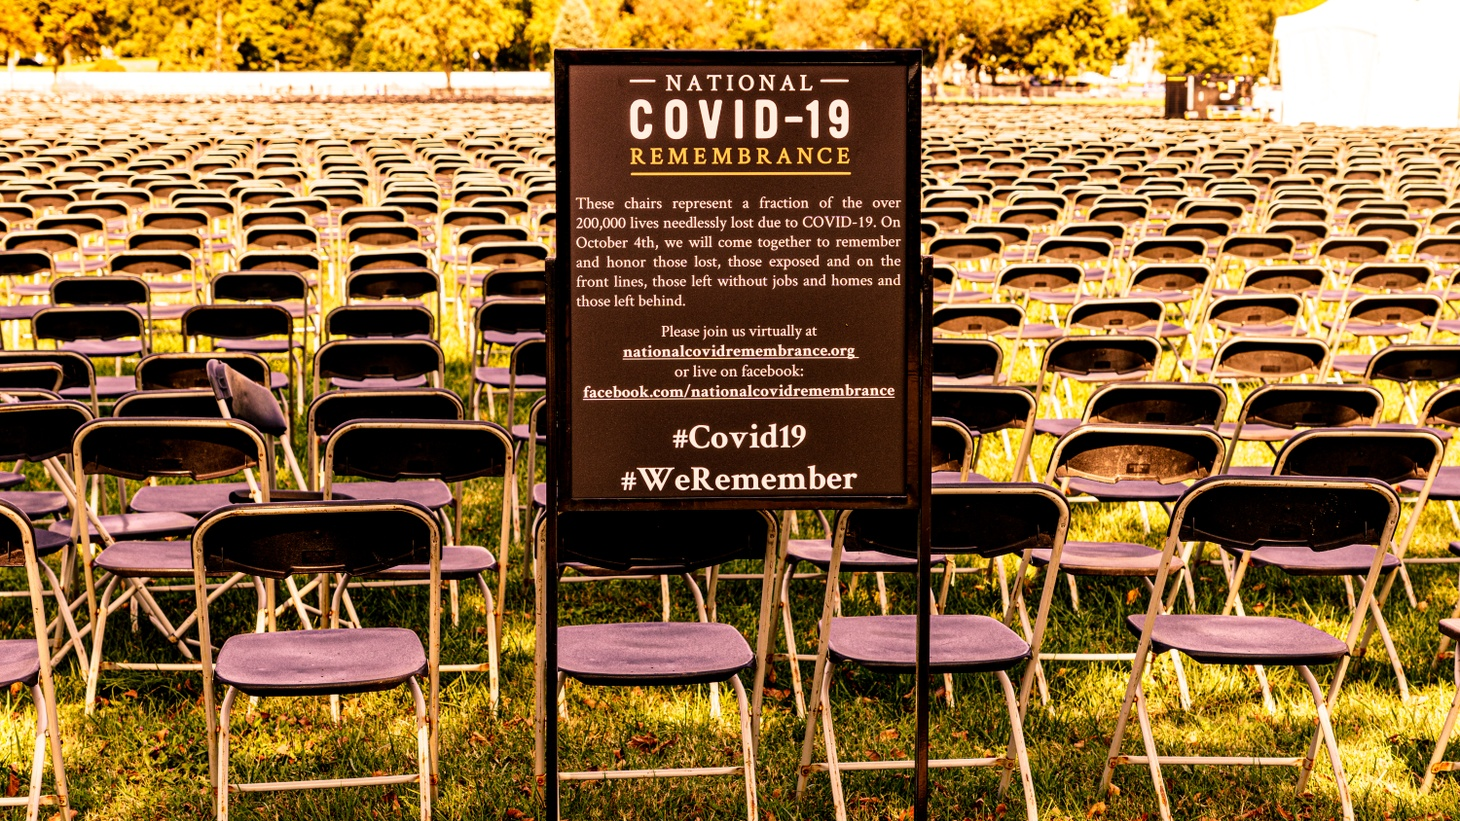 Washington D.C.'s National COVID-19 Remembrance: Chairs represent more than 200,000 lives lost due to COVID-19. October 4, 2020.